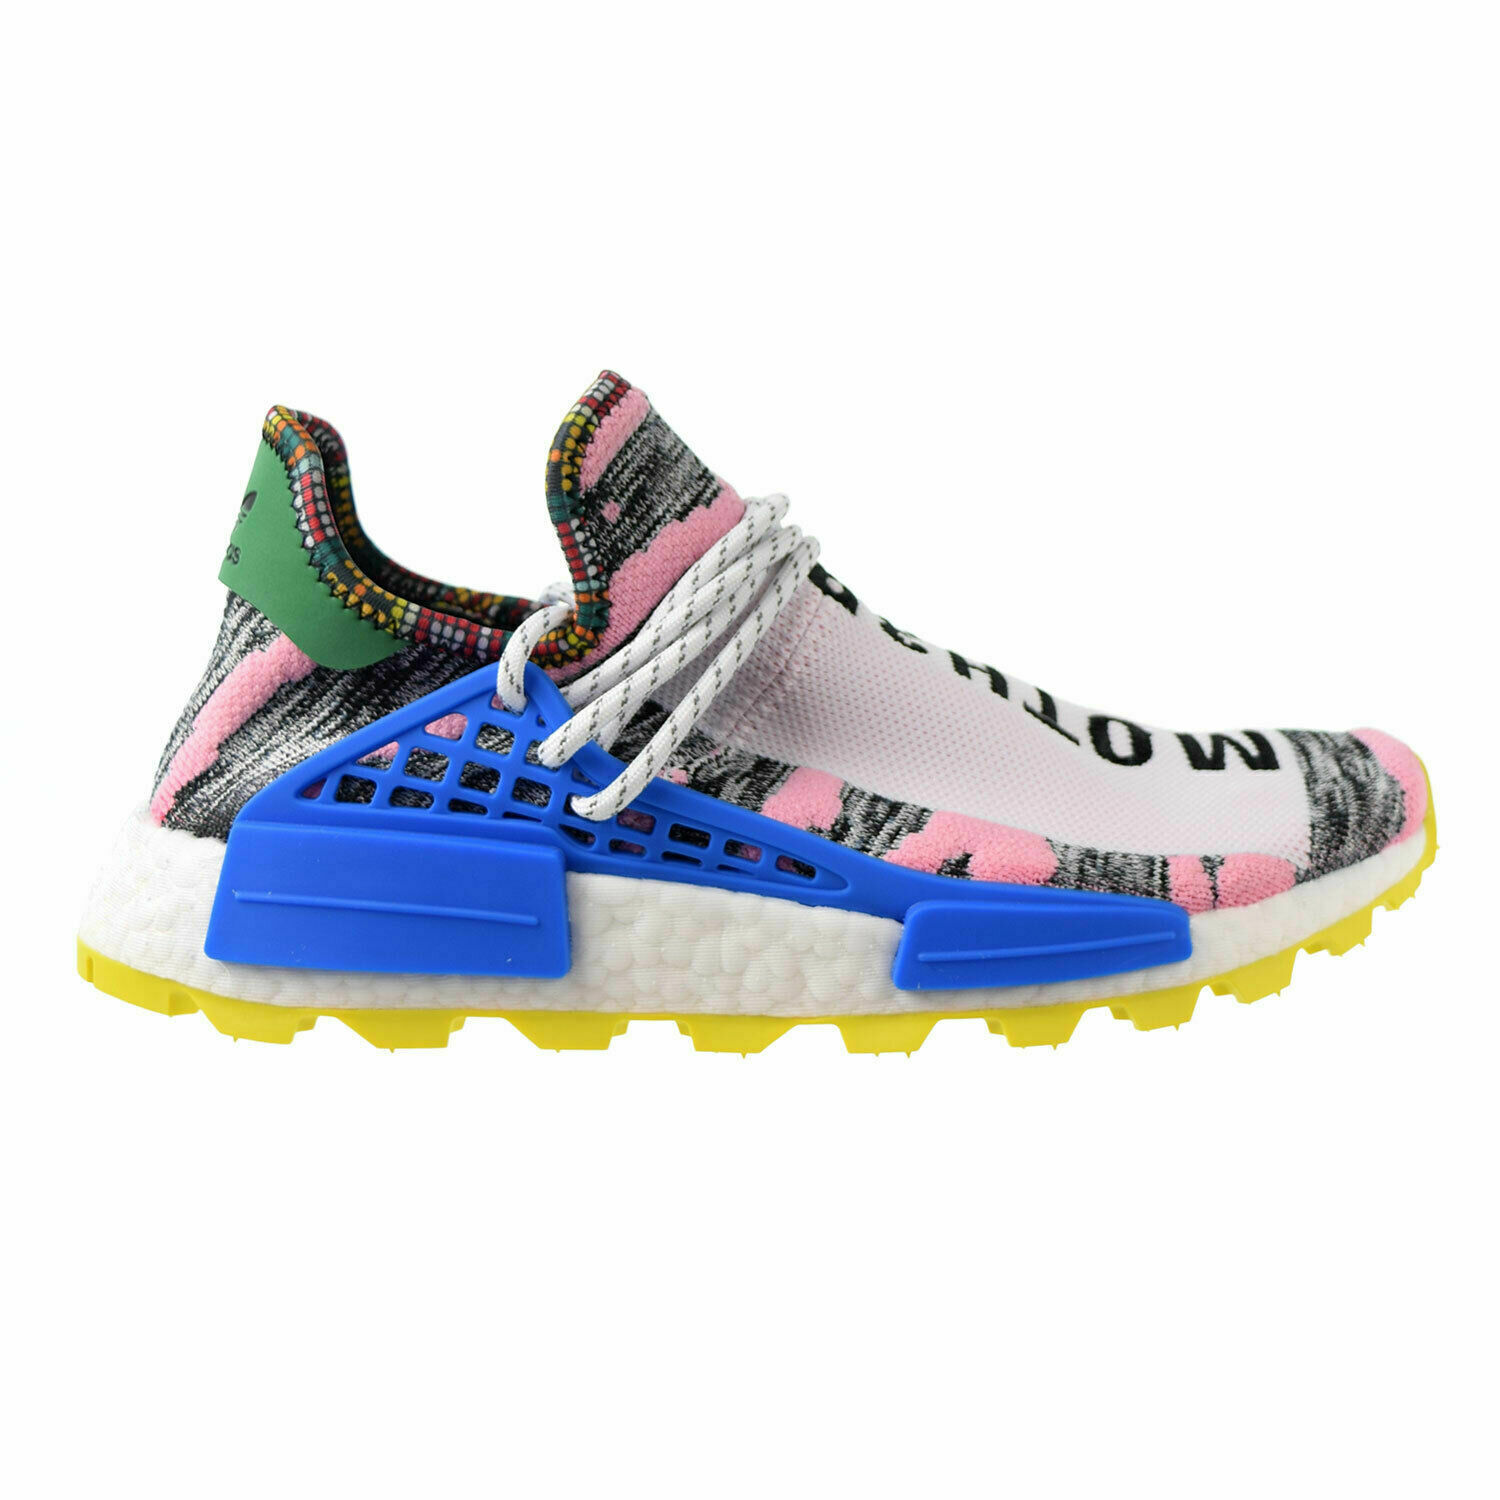 competitive price d310d 84691 {BB9531} Adidas x PW Solar Pack Hu NMD Pharrell Williams Human Race Mother  *NEW*